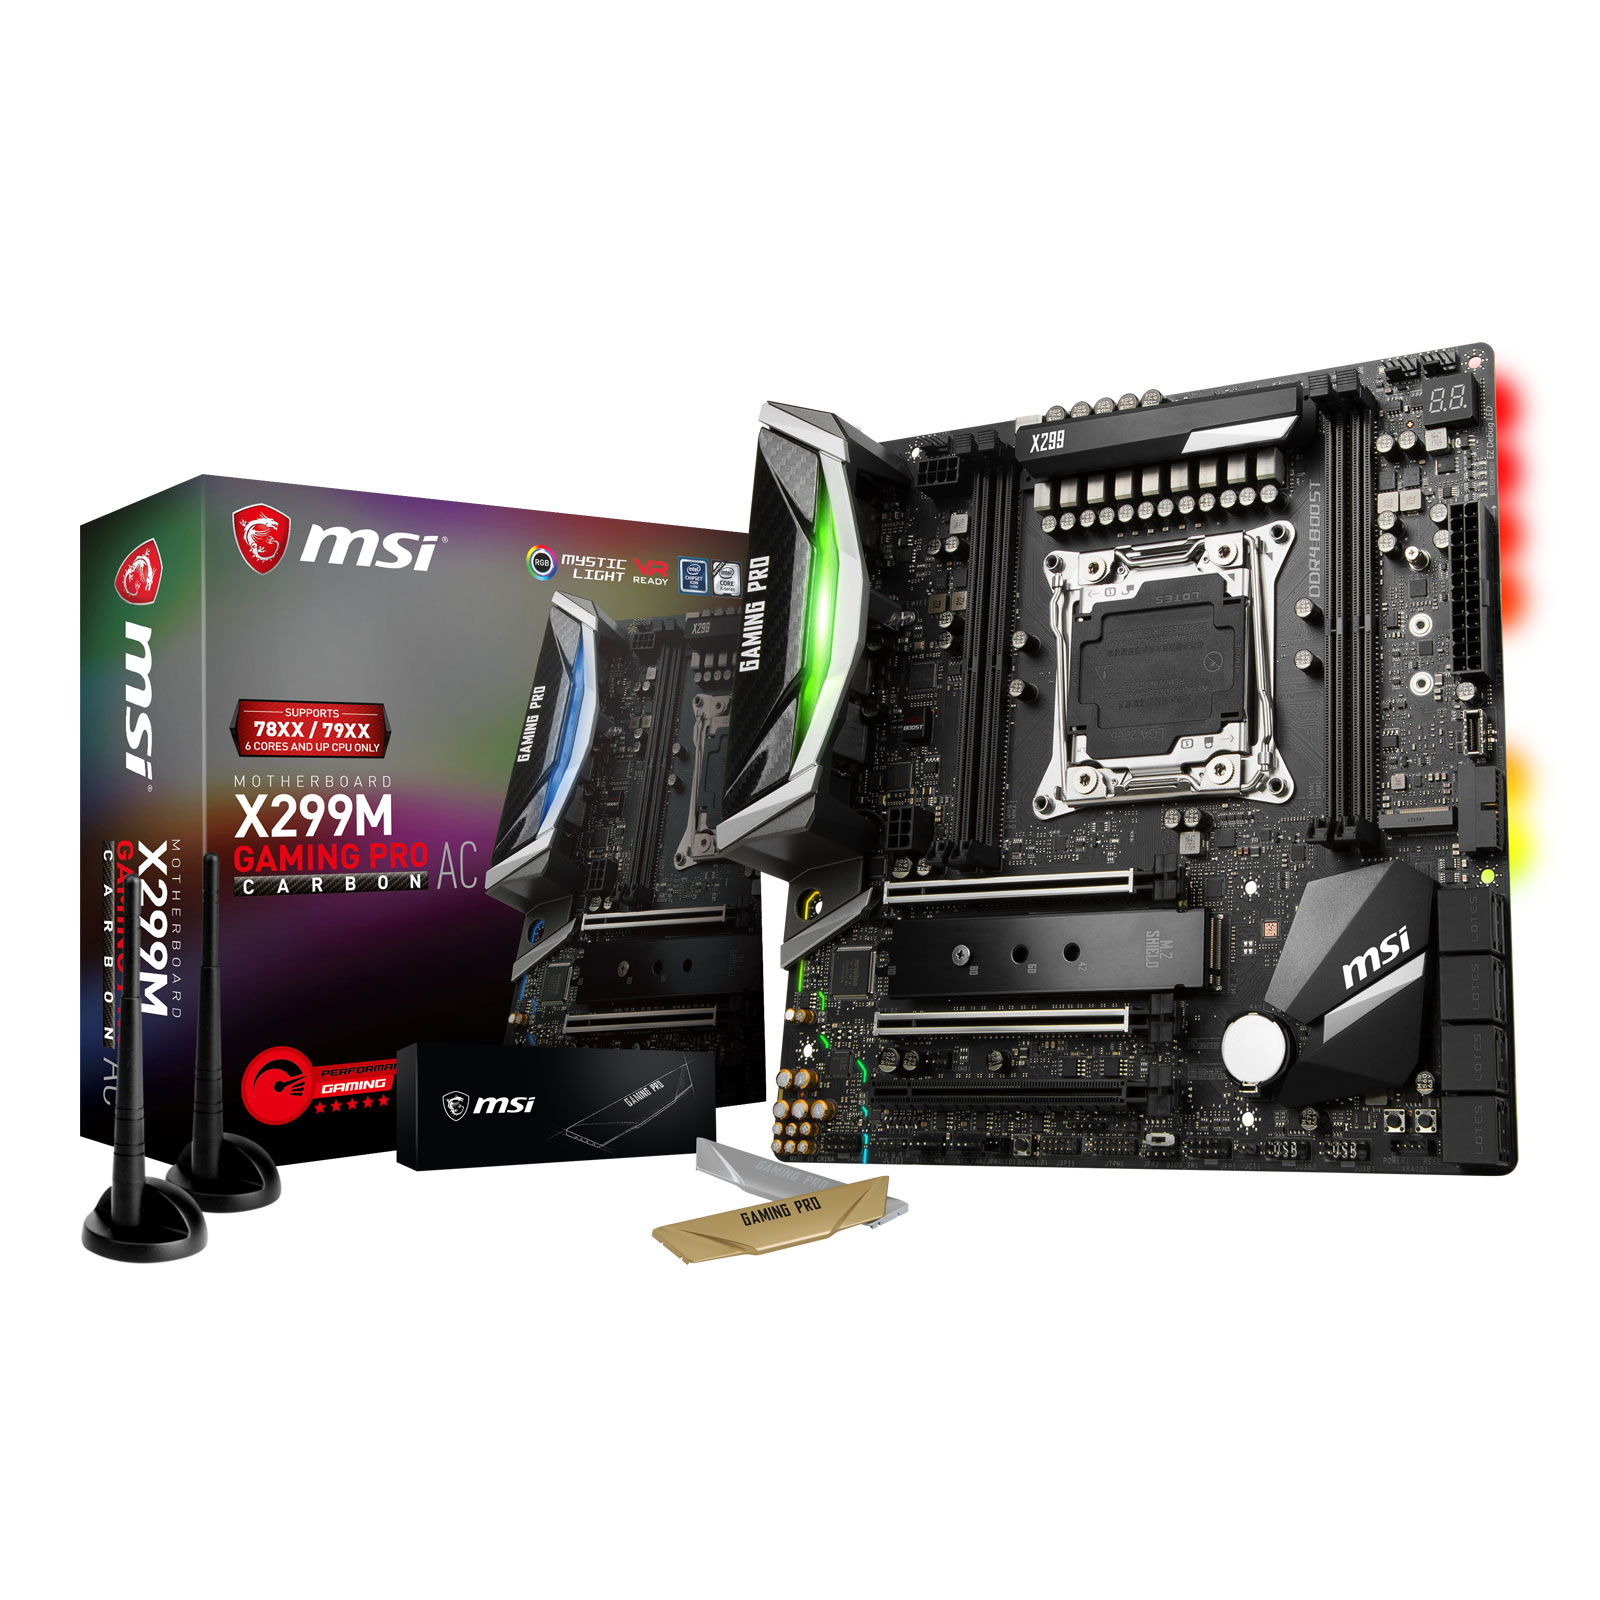 Carte mère MSI X299M GAMING PRO CARBON AC Carte mère micro ATX Socket 2066 Intel X299 Express - DDR4 - SATA 6Gb/s - M.2 - USB 3.1 - 3x PCI-Express 3.0 16x